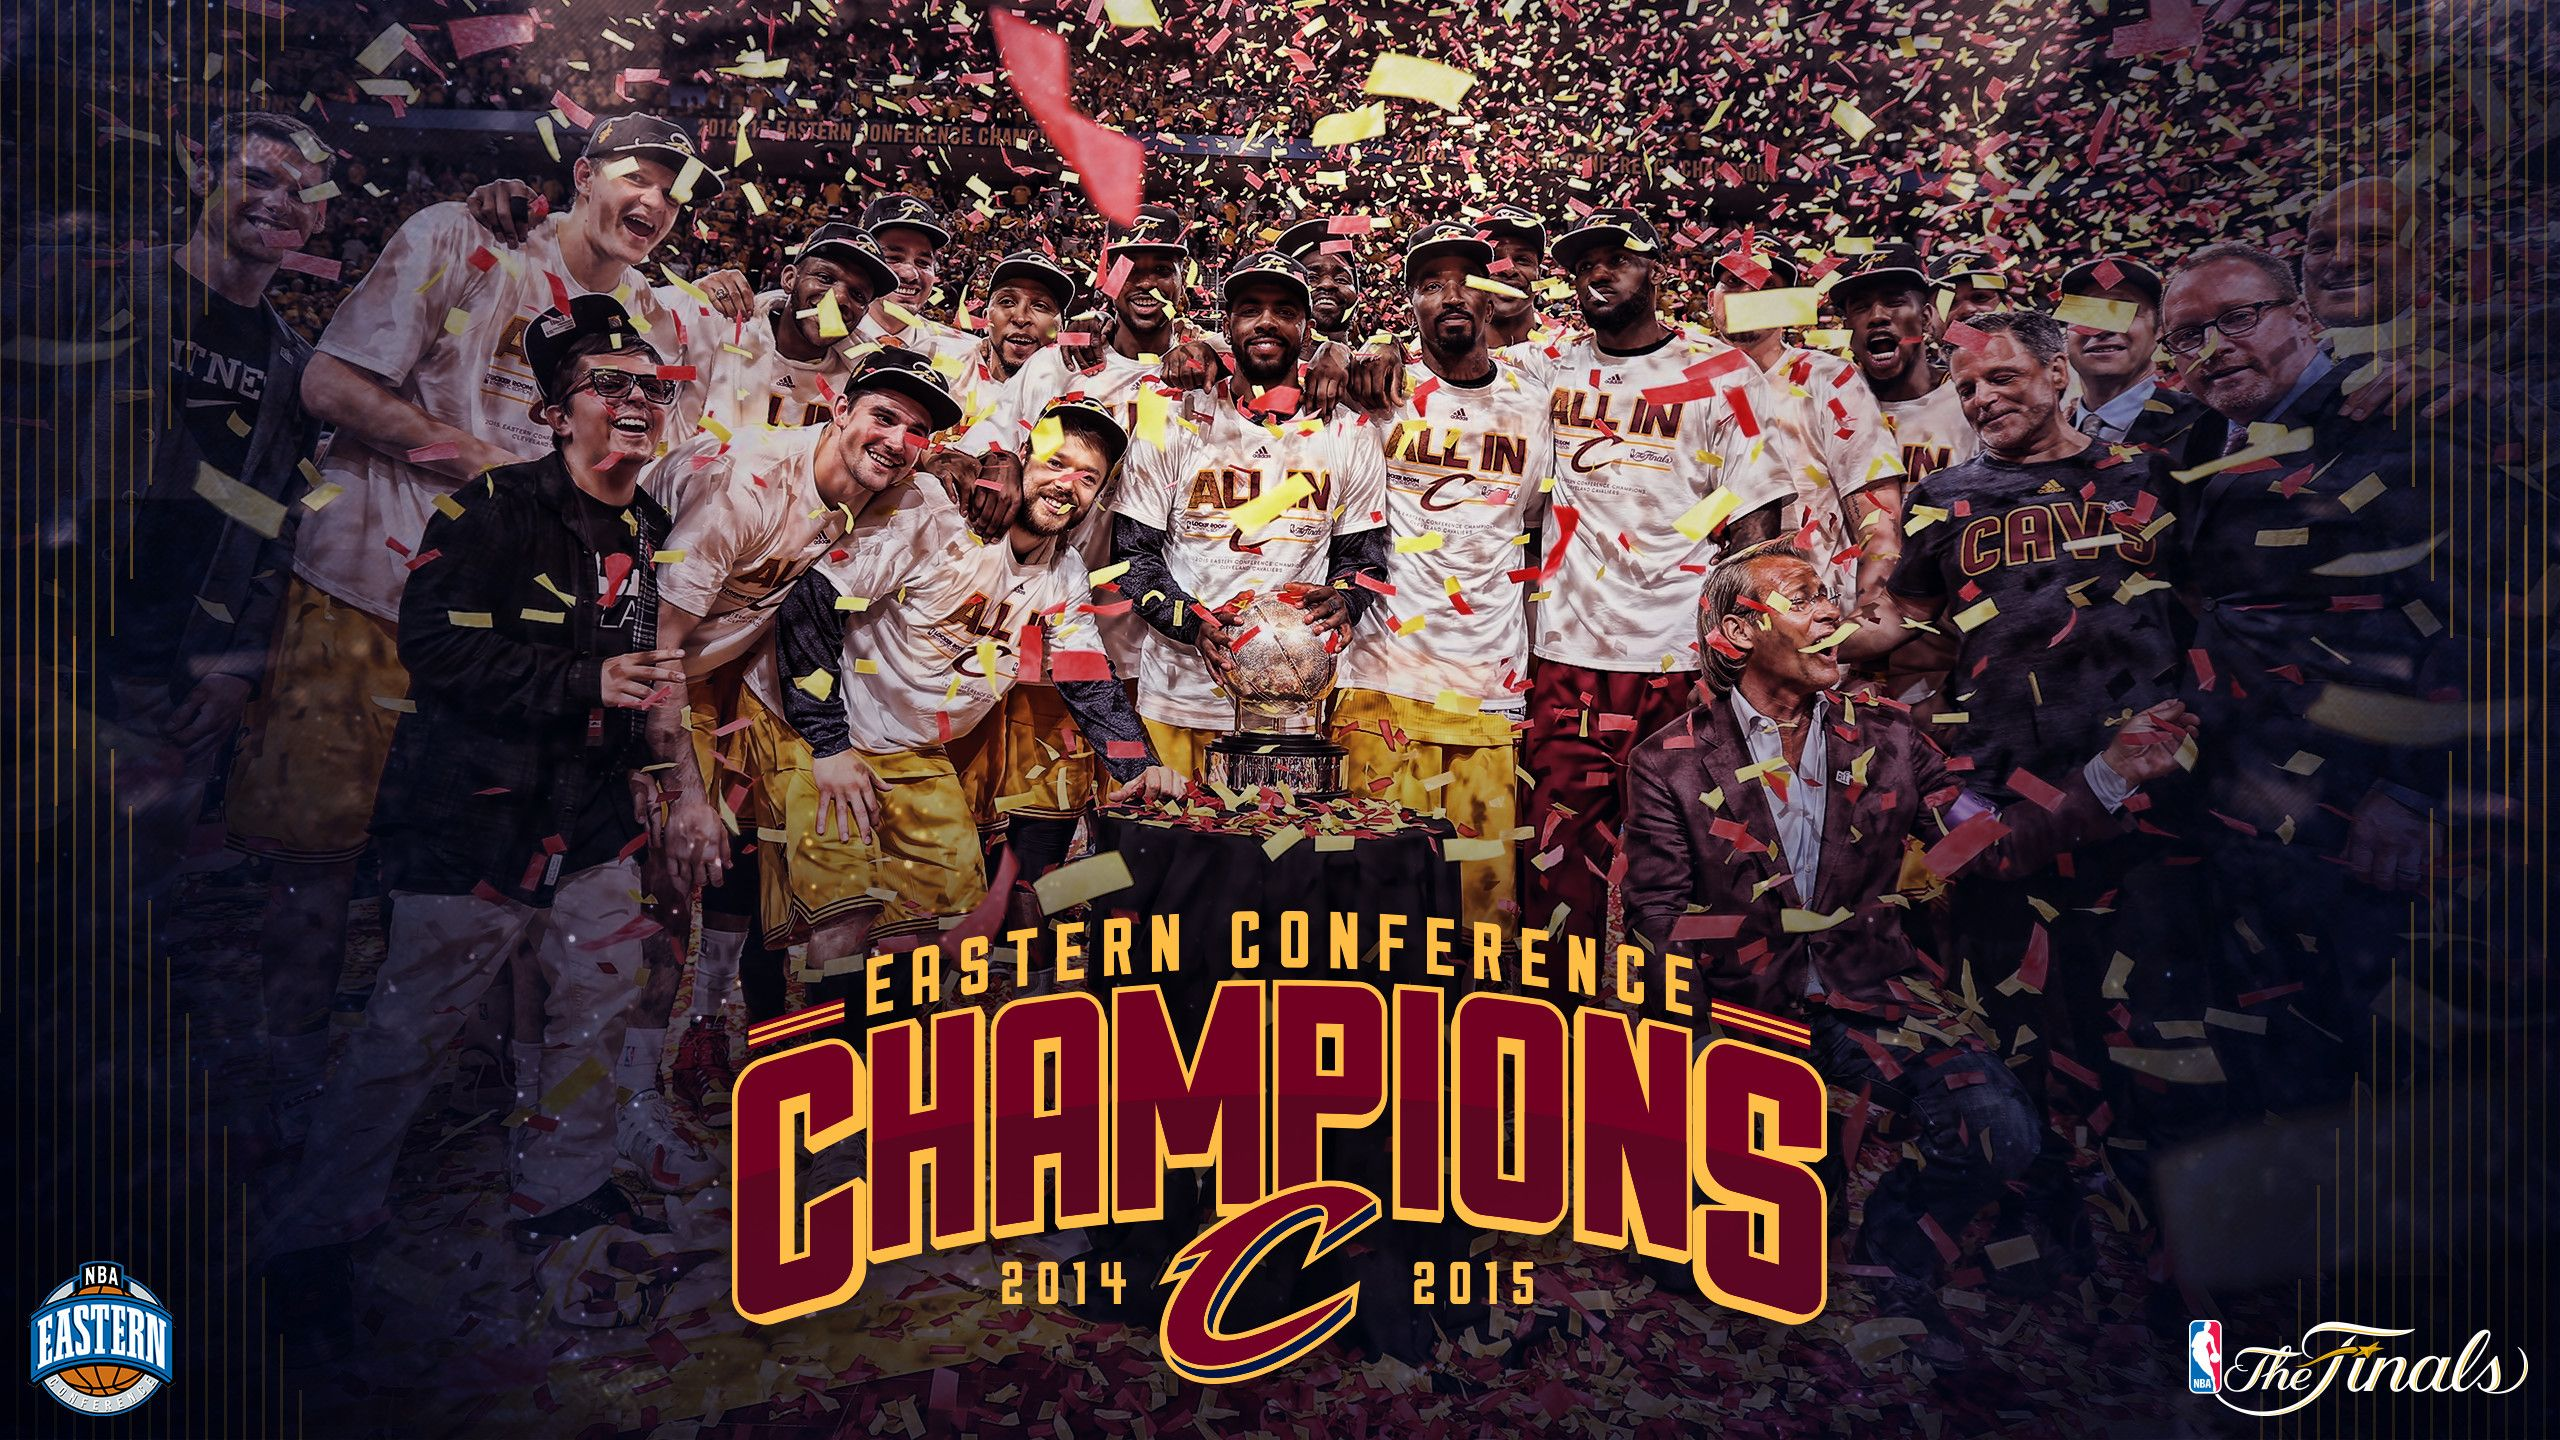 Cavs Championship Wallpaper In 2020 Cavs Championship Nba Wallpapers Lebron James Wallpapers